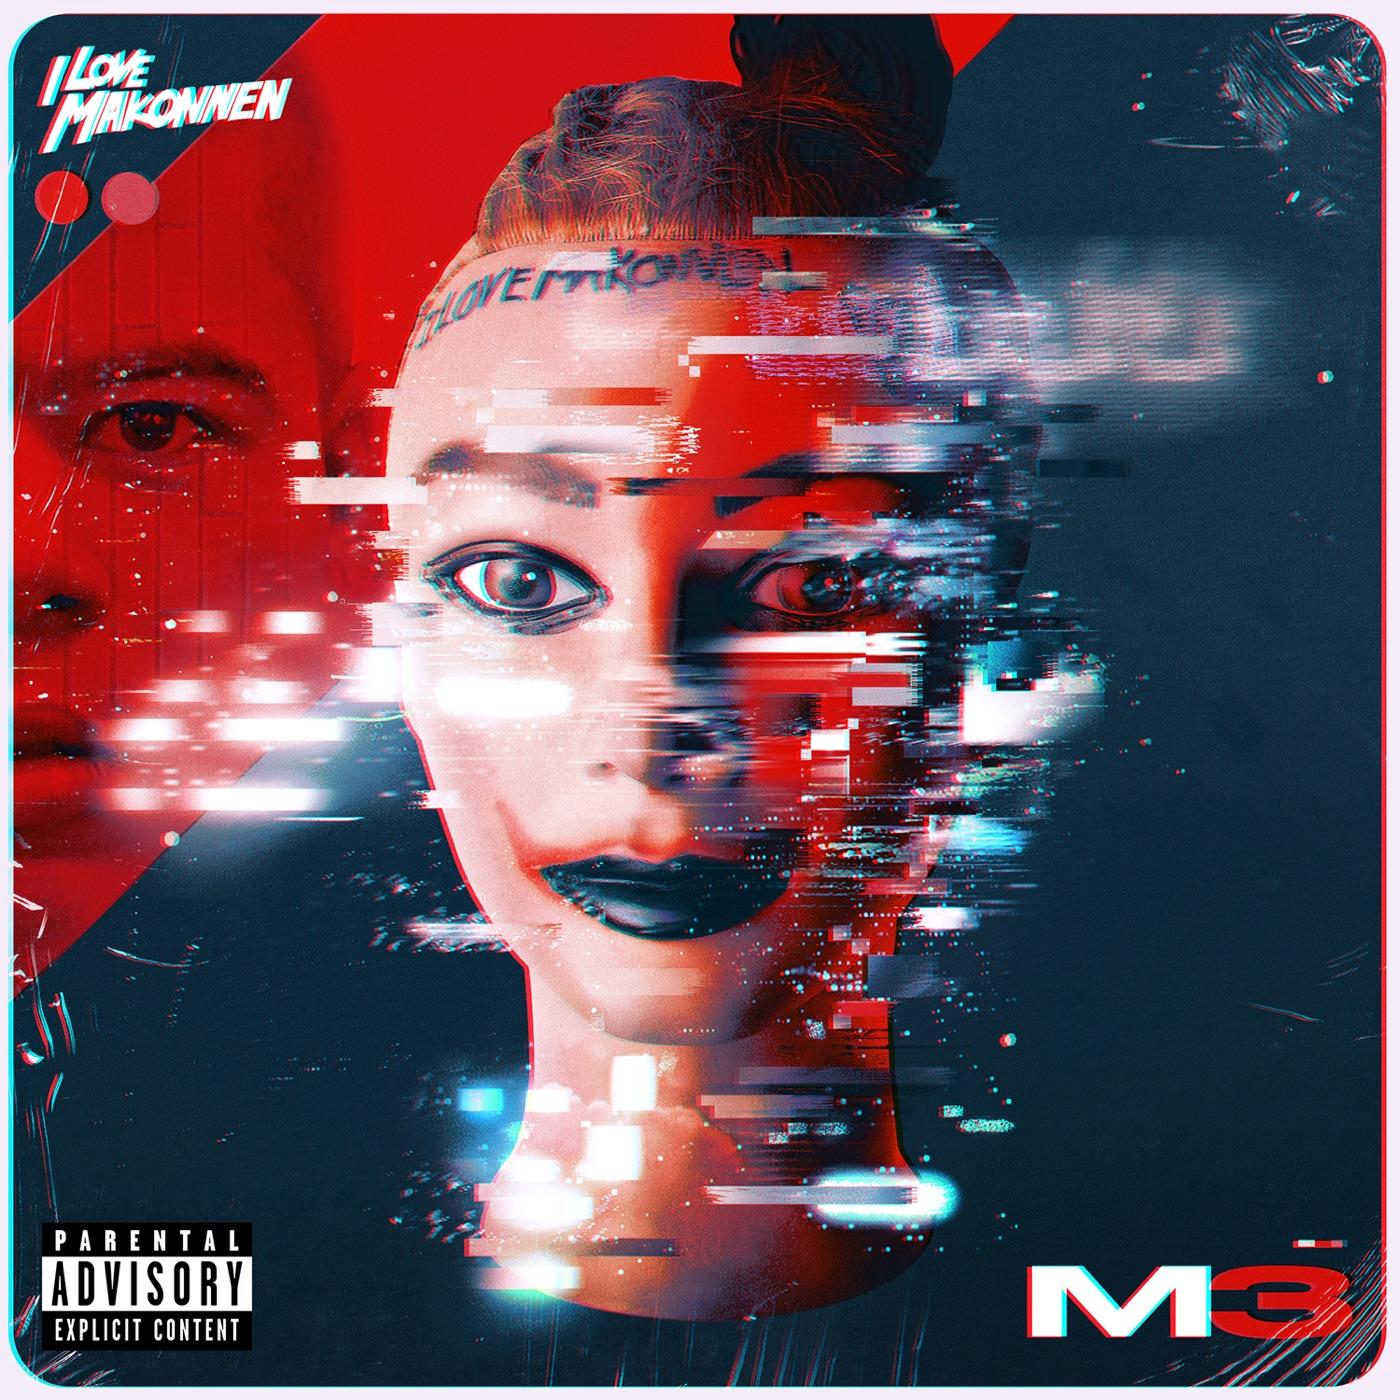 ILoveMakonnen - Drunk On Saturday